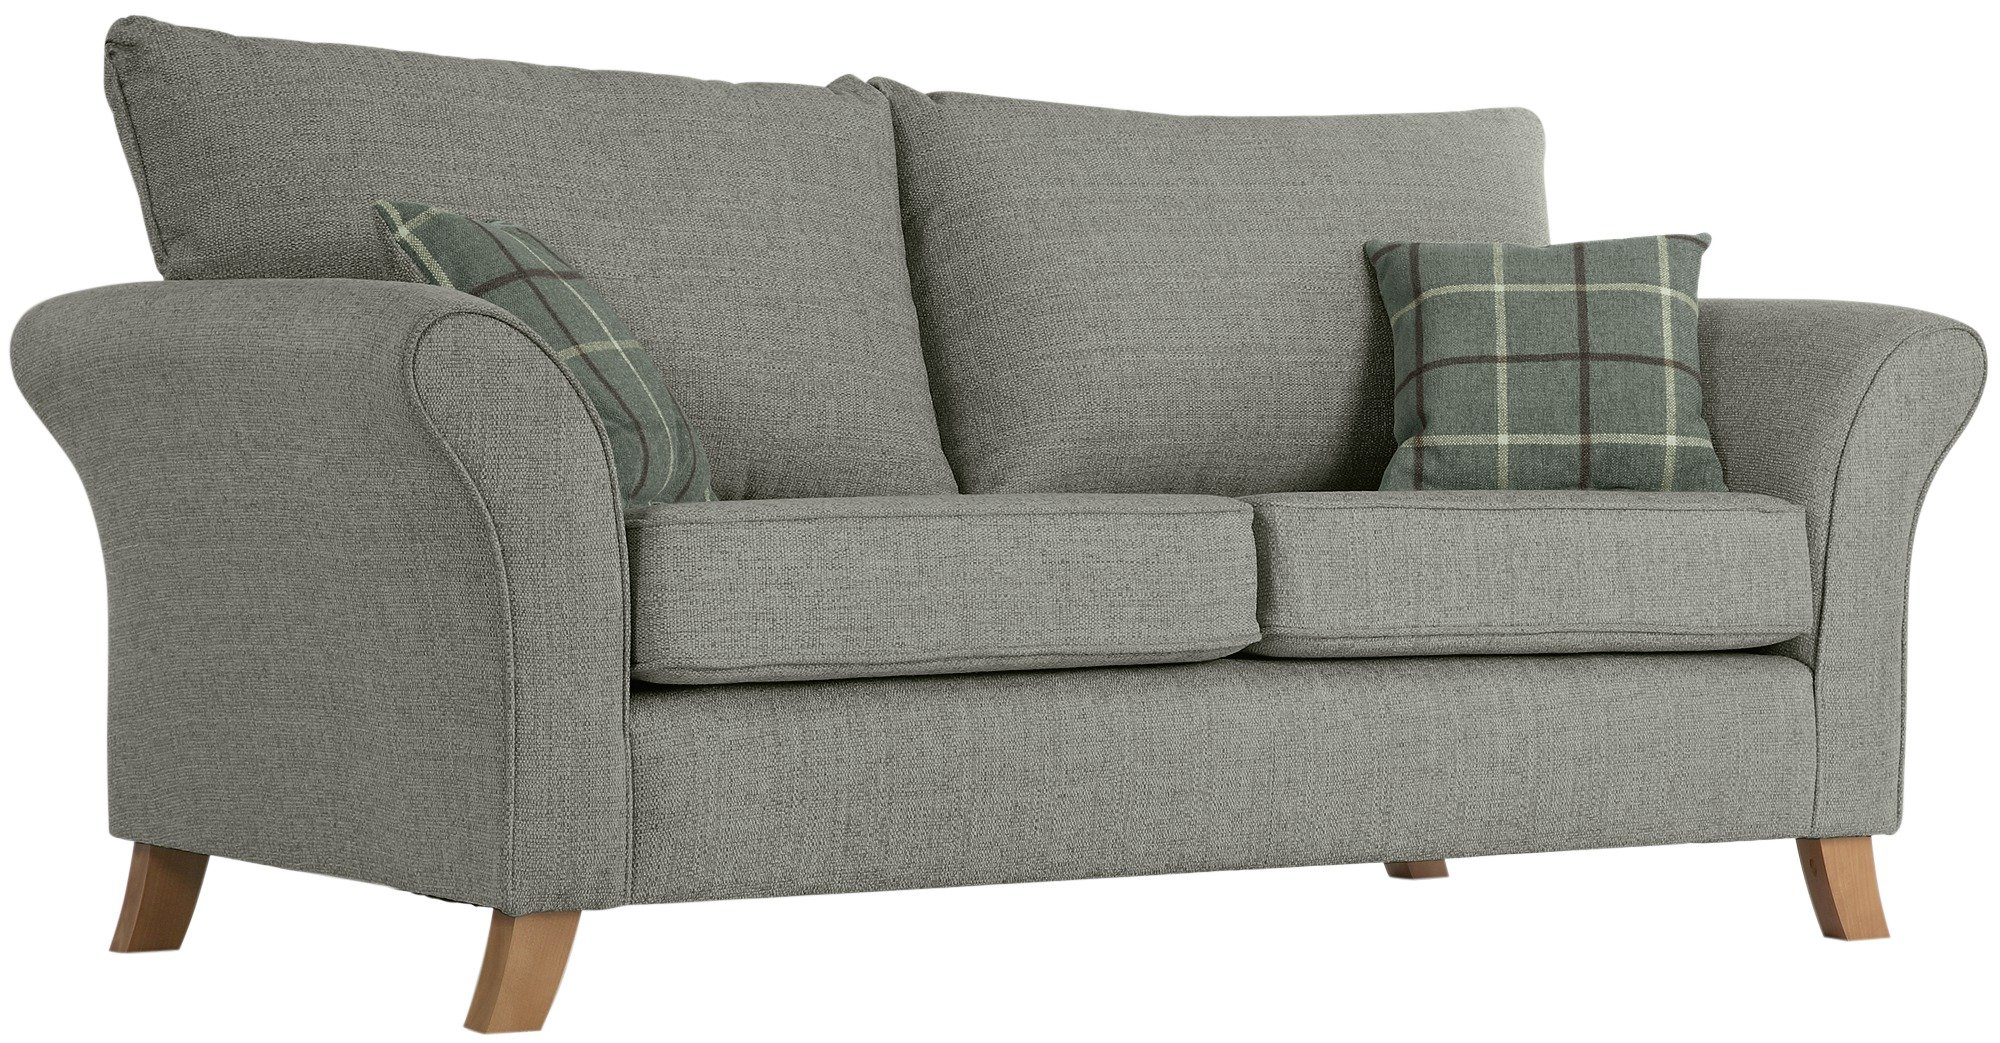 Buy Collection Kayla 3 Seater High Back Fabric Sofa Grey at